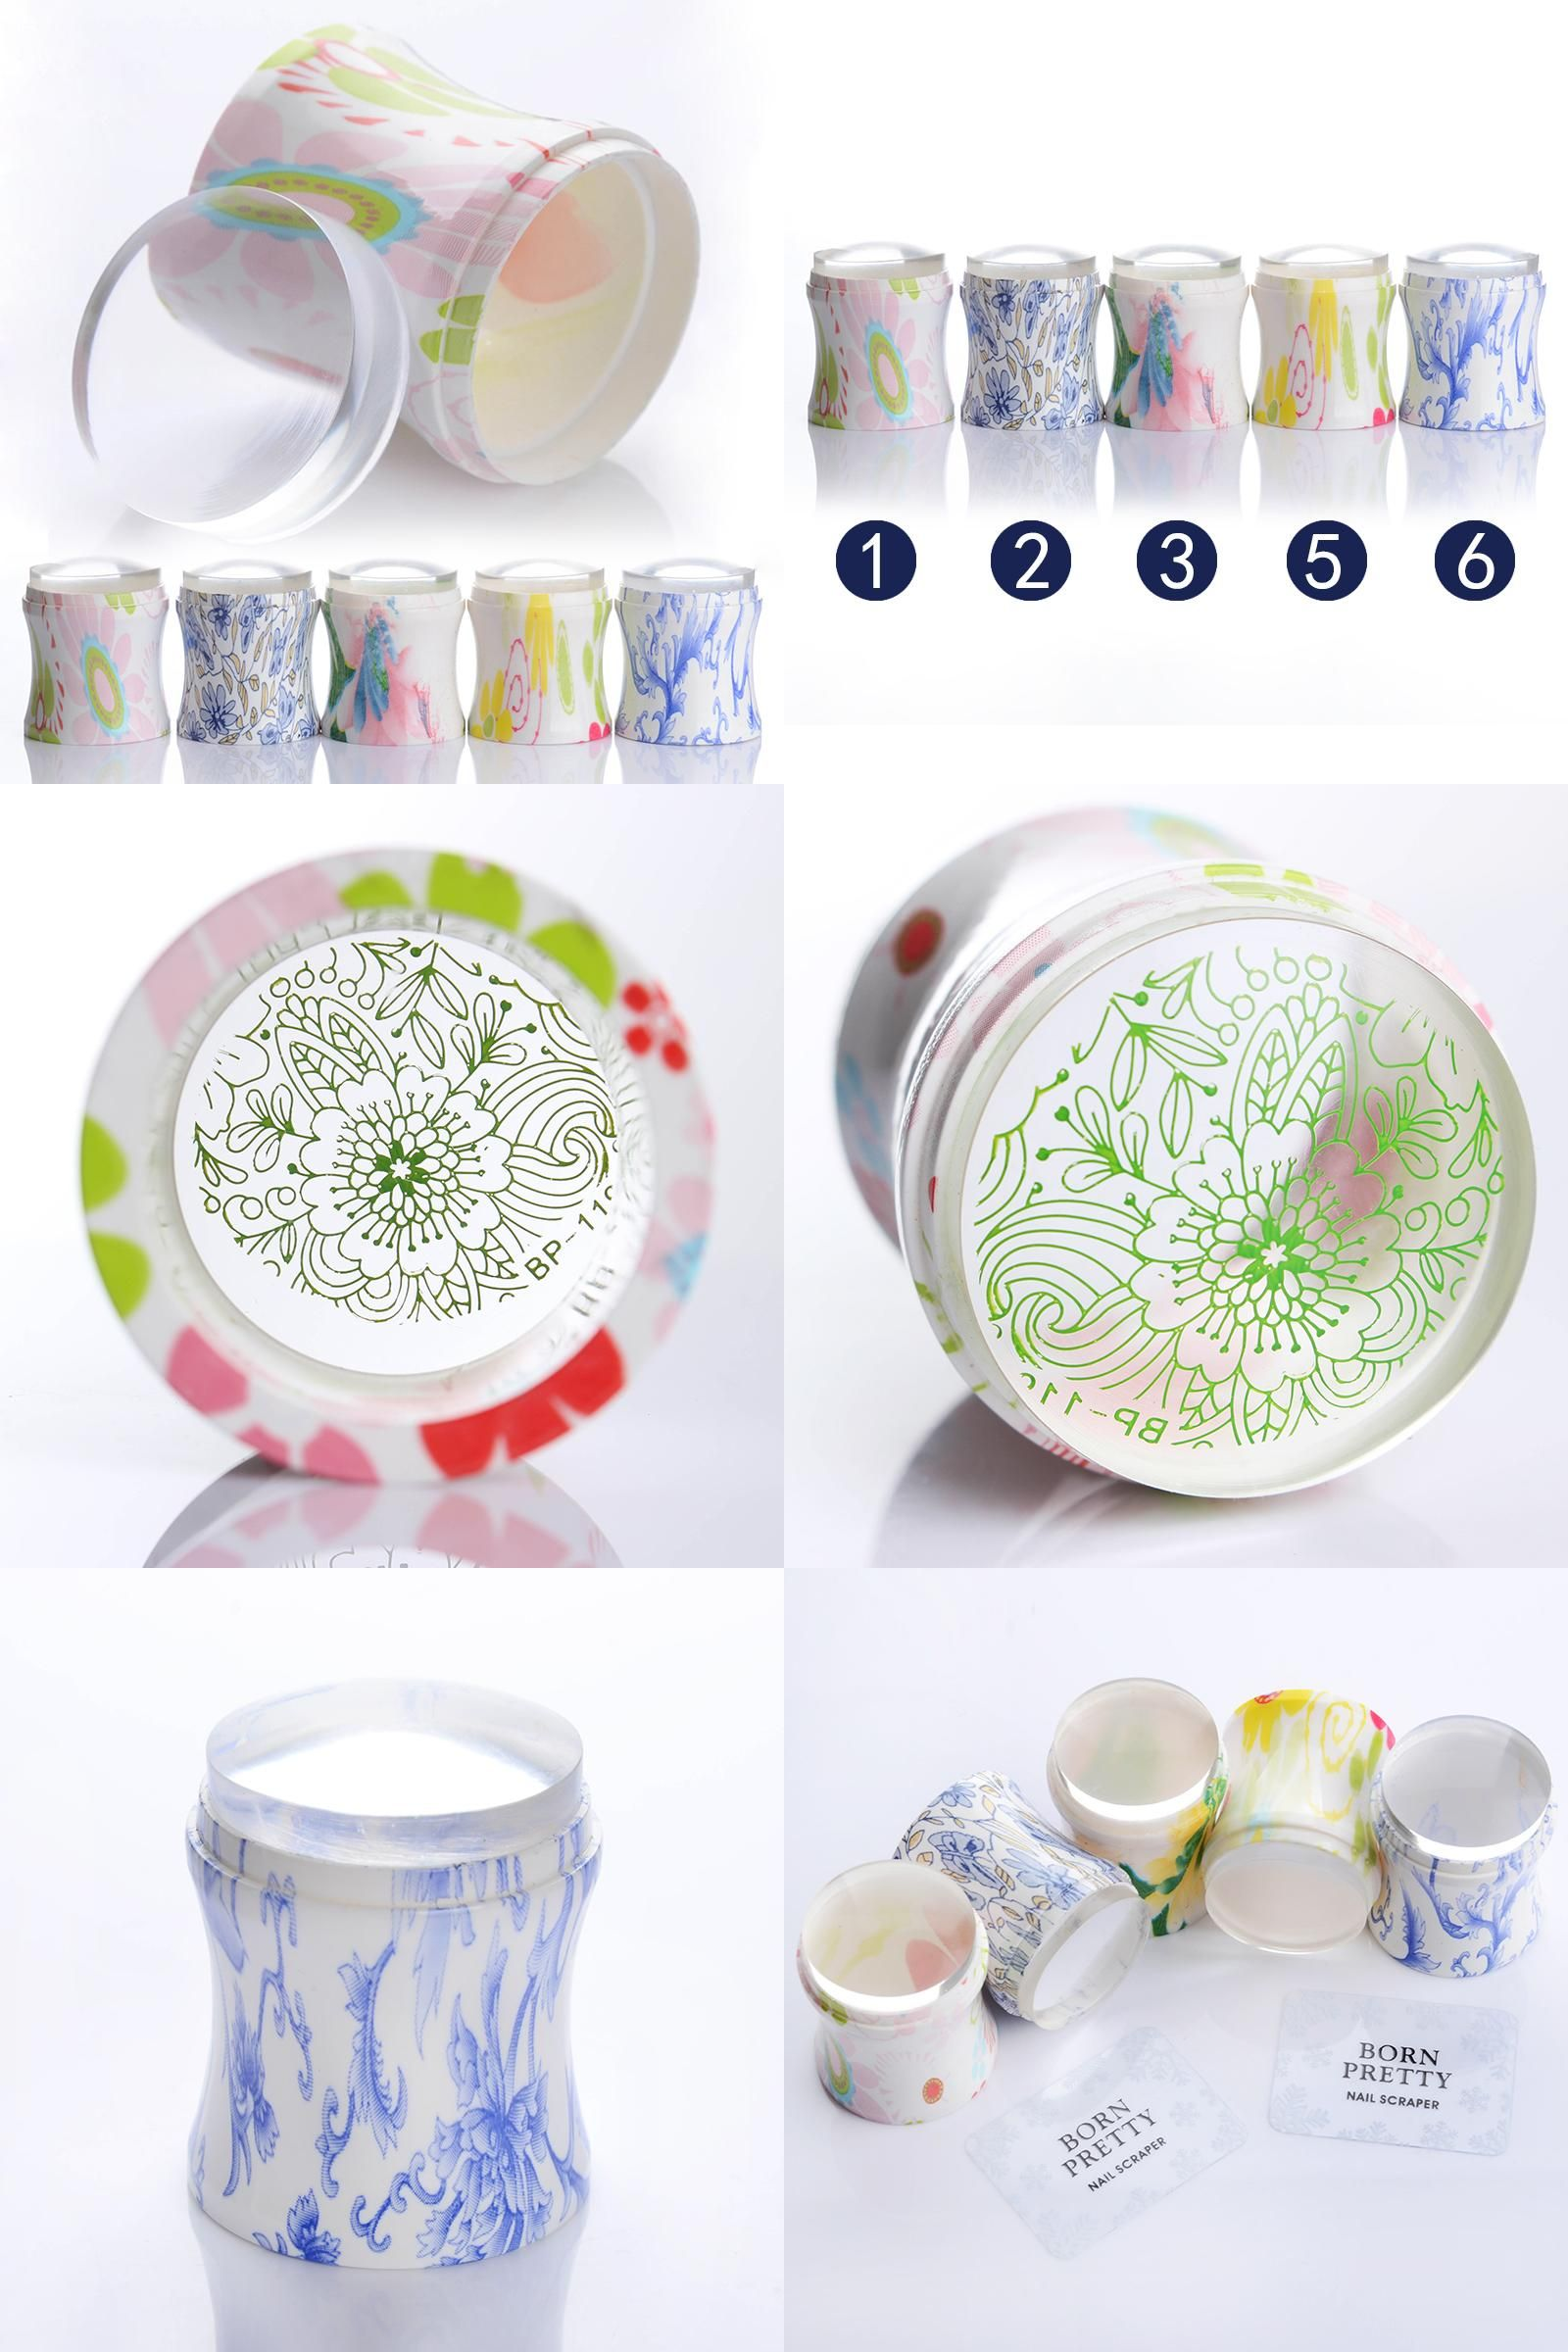 Visit to Buy] 1Pc 3.8cm XL Clear Jelly Nail Art Stamper Silicone ...